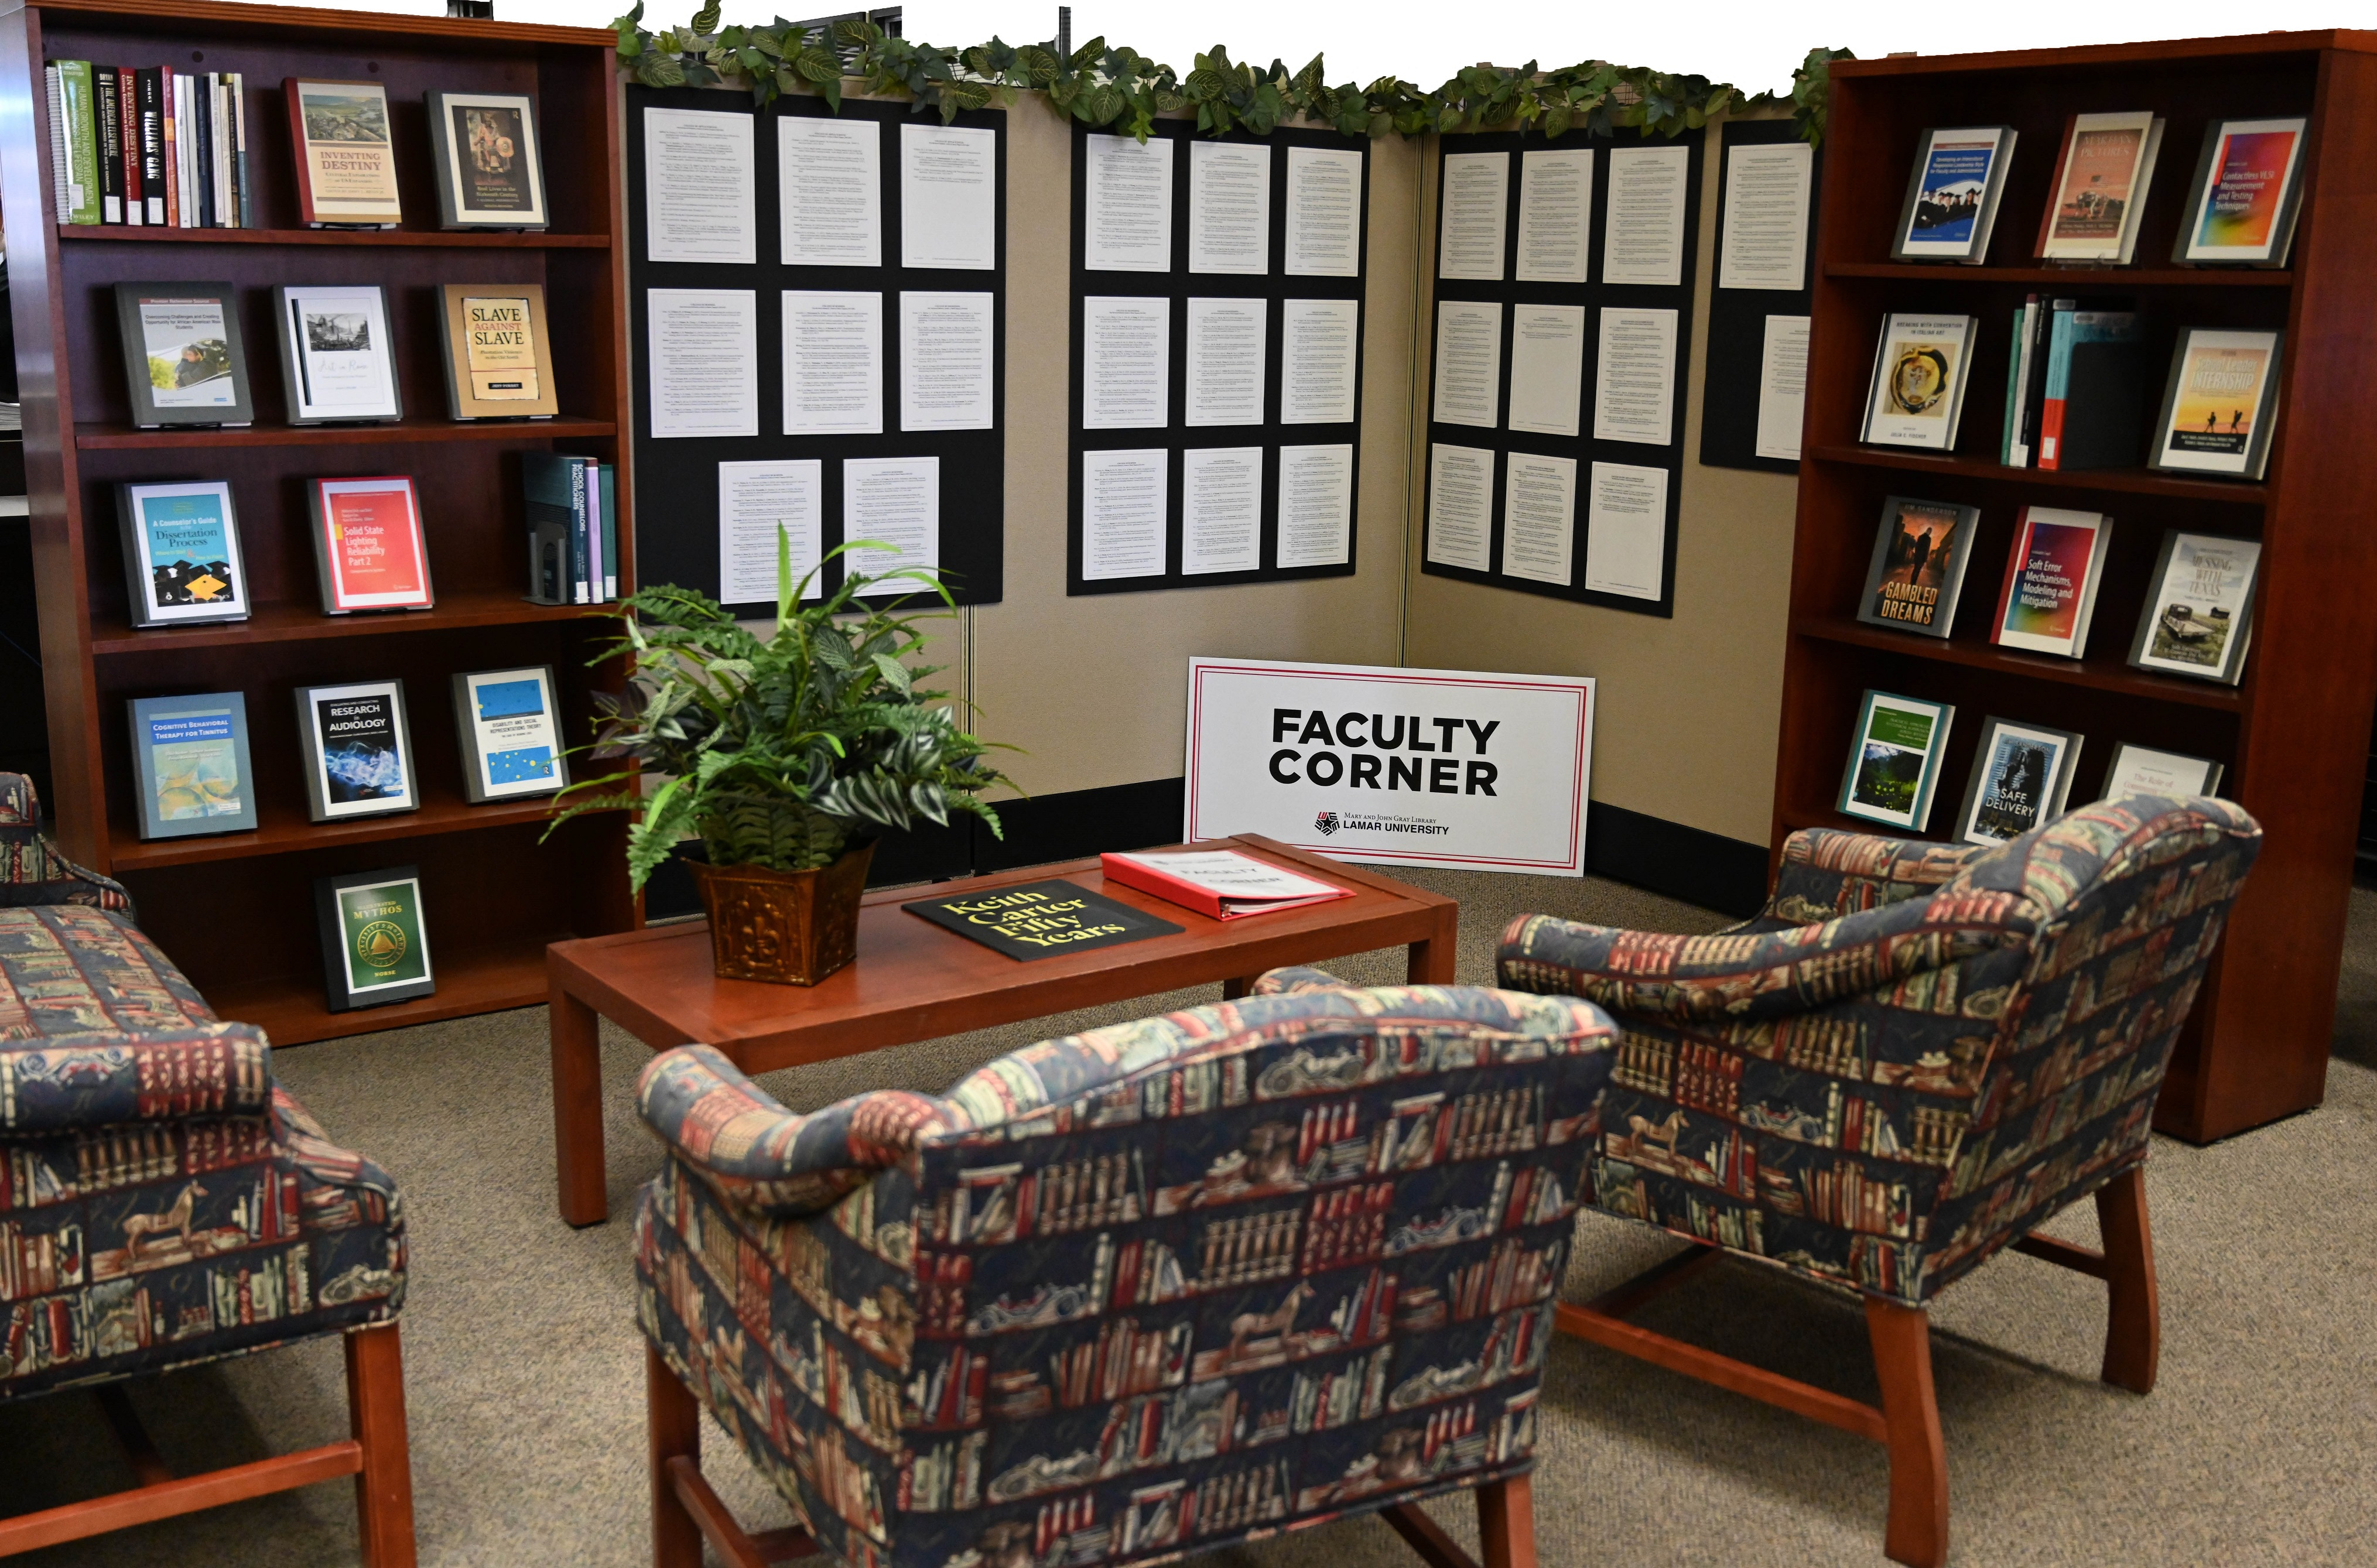 Image of Faculty Corner in the Library